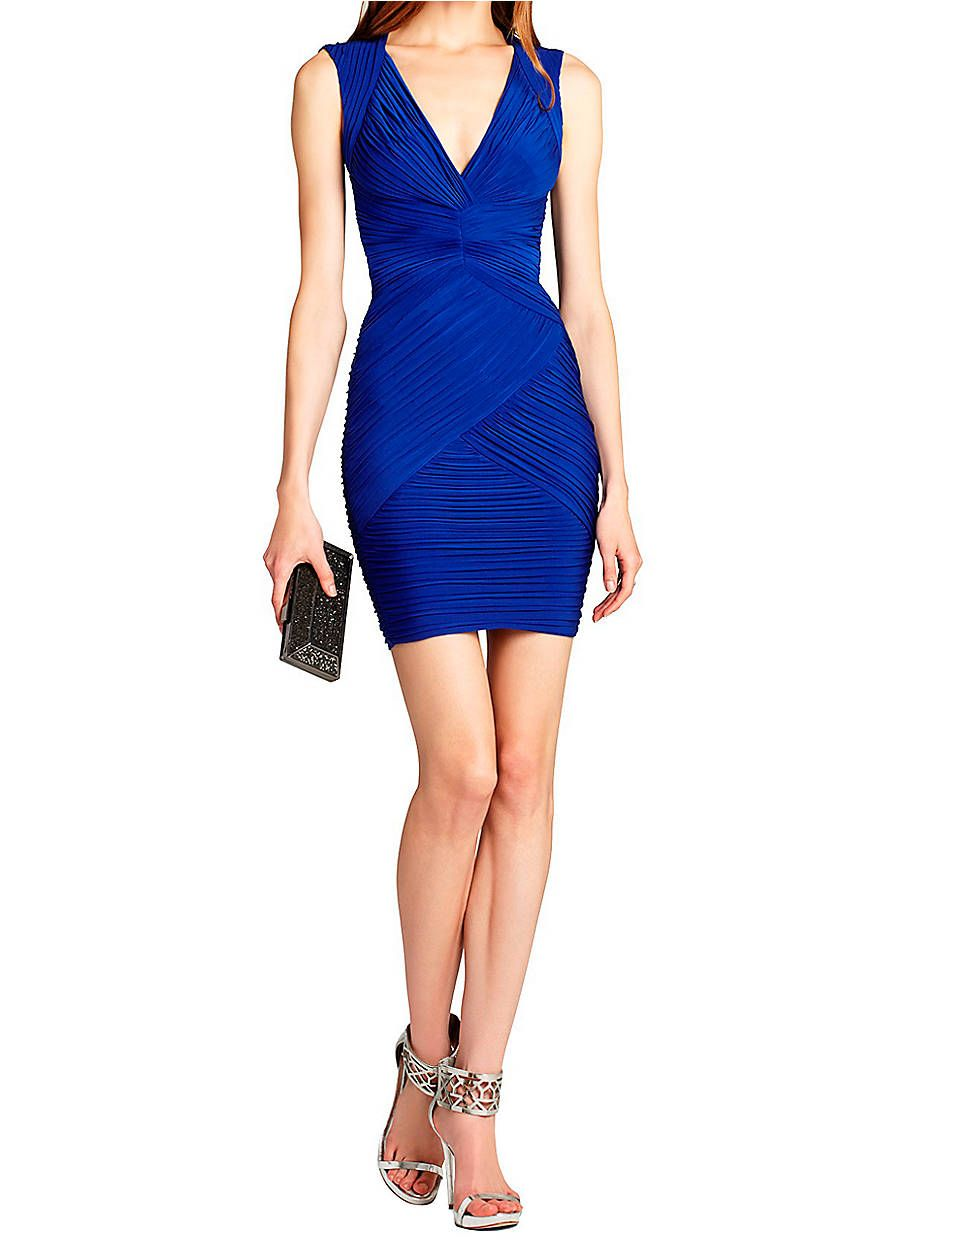 BCBGMAXAZRIA Edesa Shirred Cocktail Dress $298 | Lord and Taylor